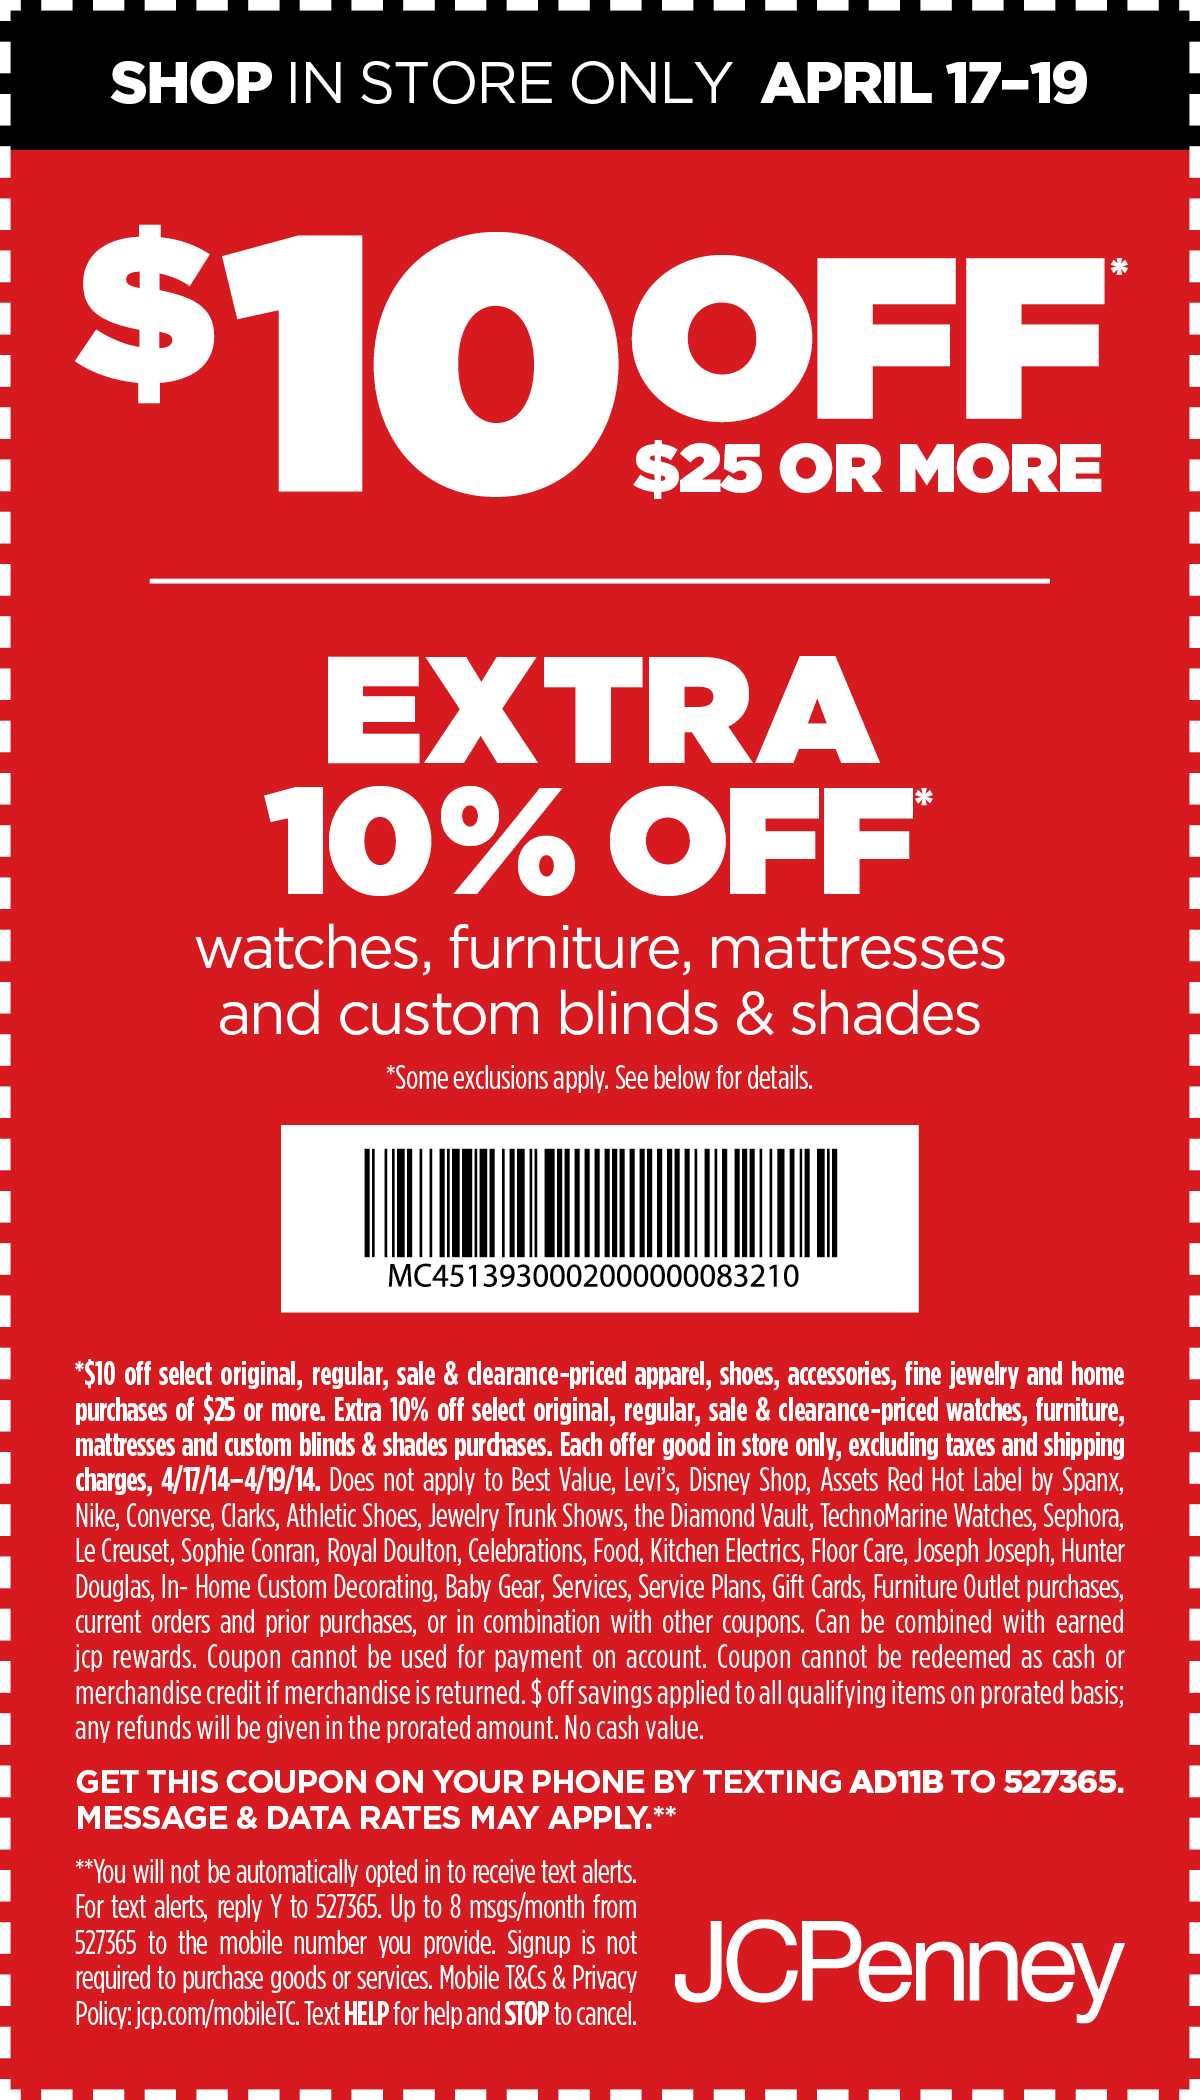 JCPenney Rewards Code 2017 w/t Serial Number Promo